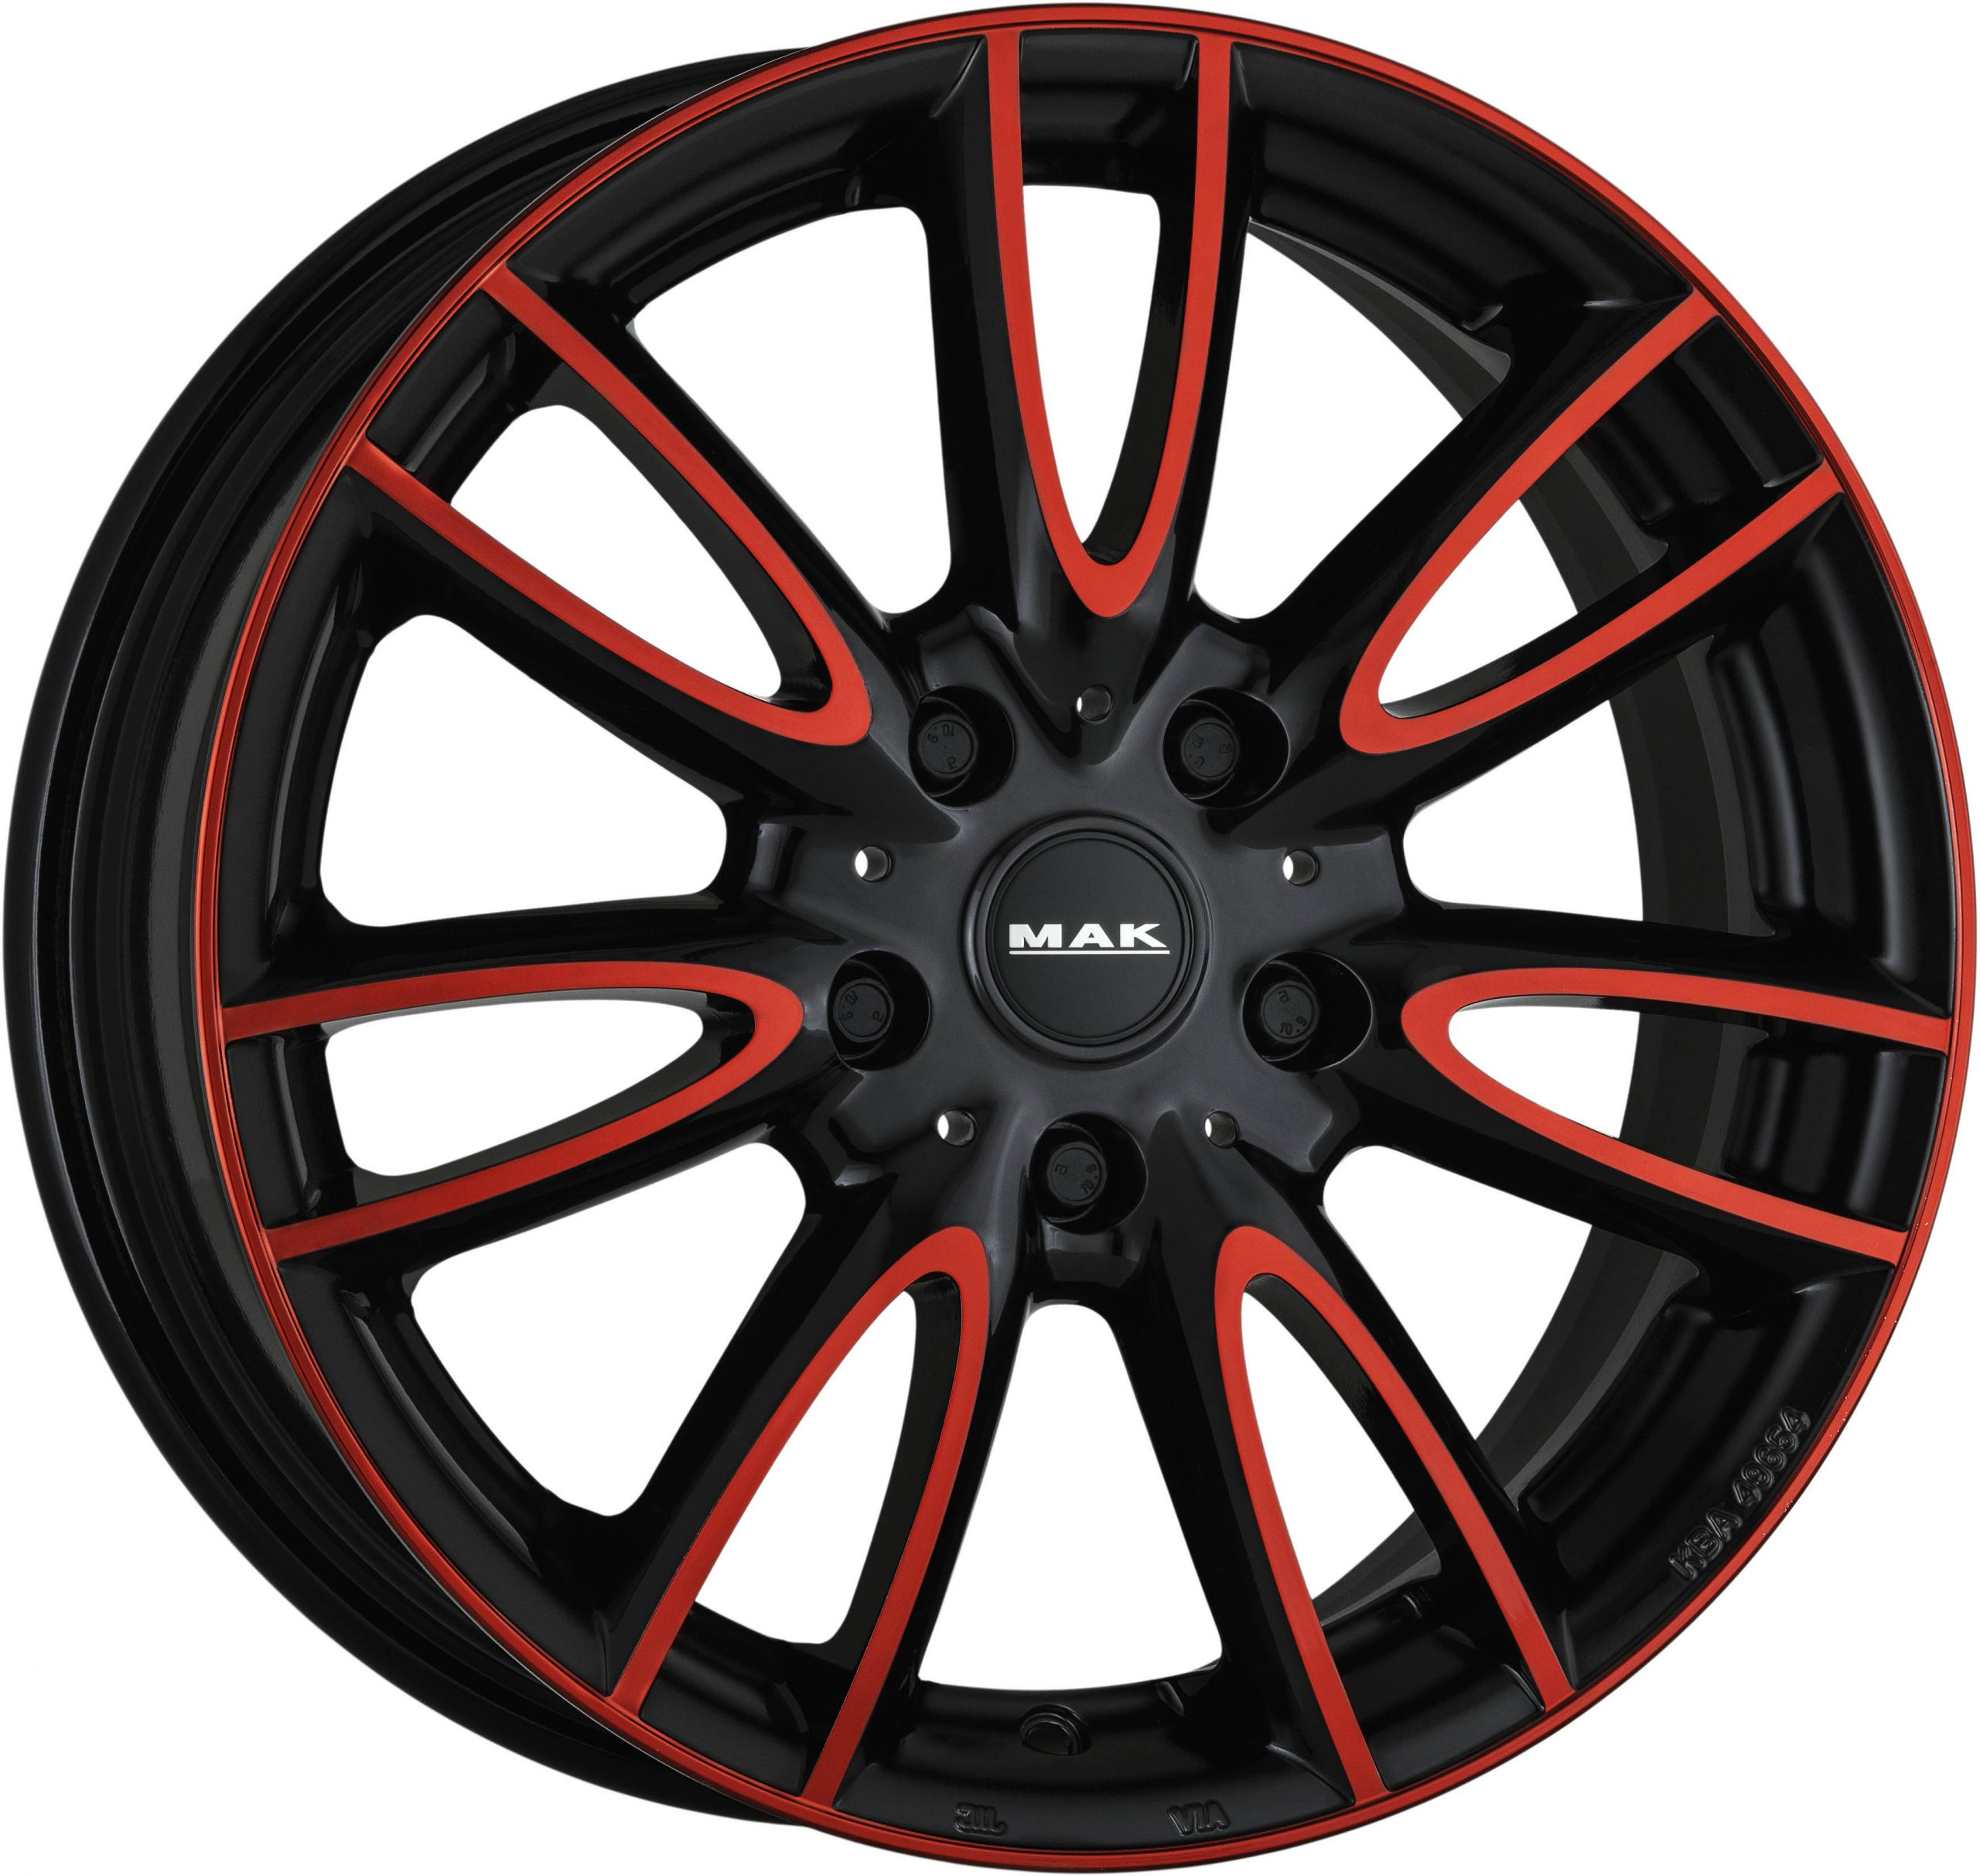 Mak Jackie W Anod Red Black Wheelwright Alloy